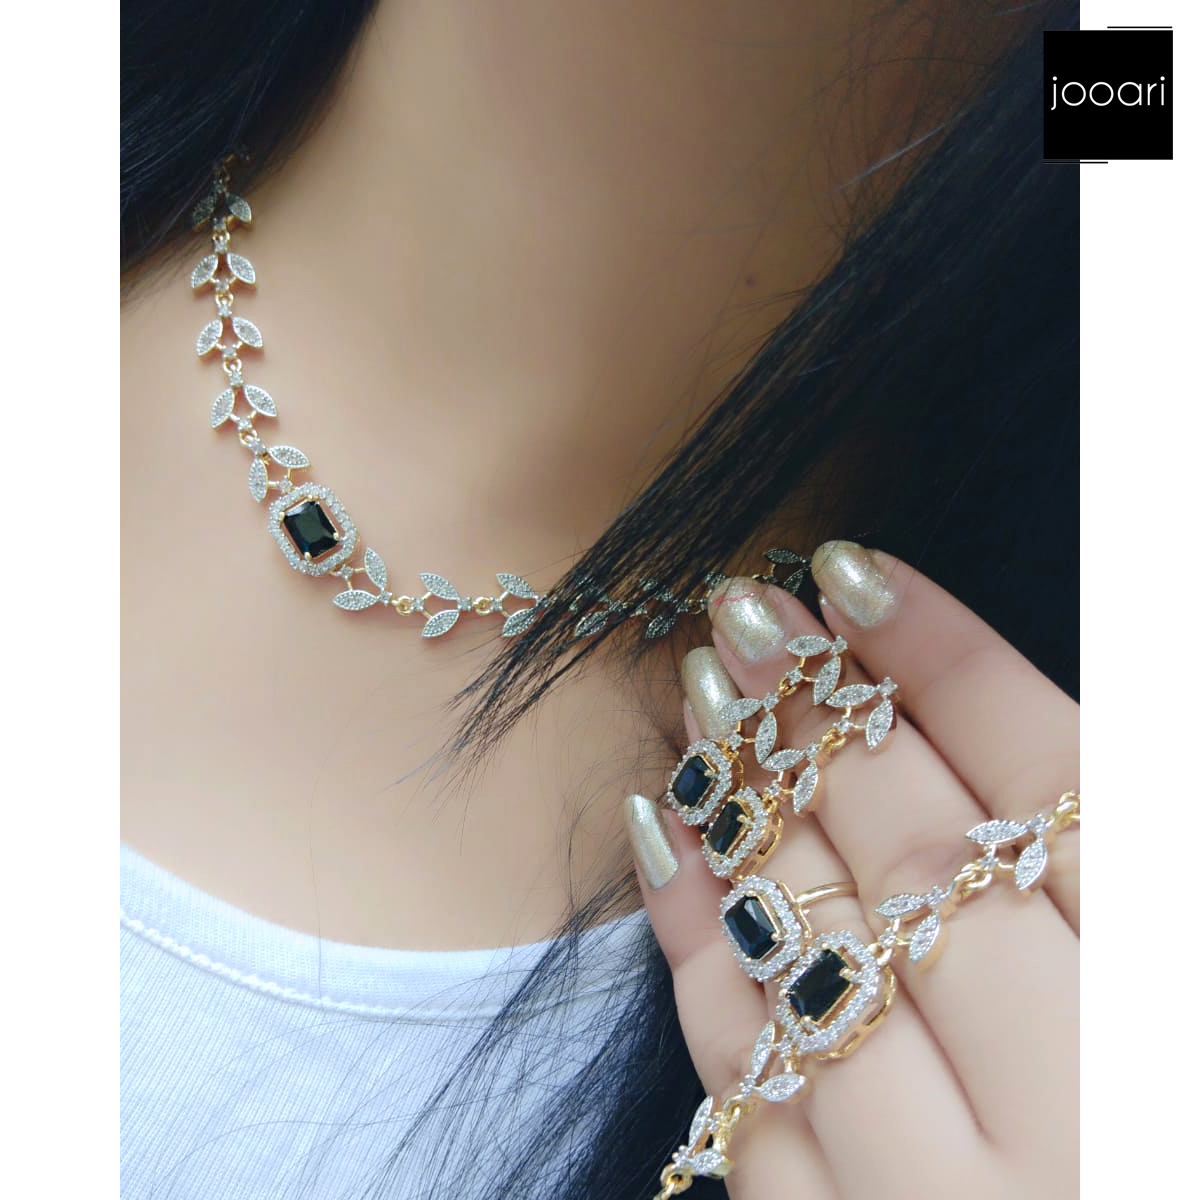 French Black Stone Studded Exquisite Pendant Set for Women and Girls